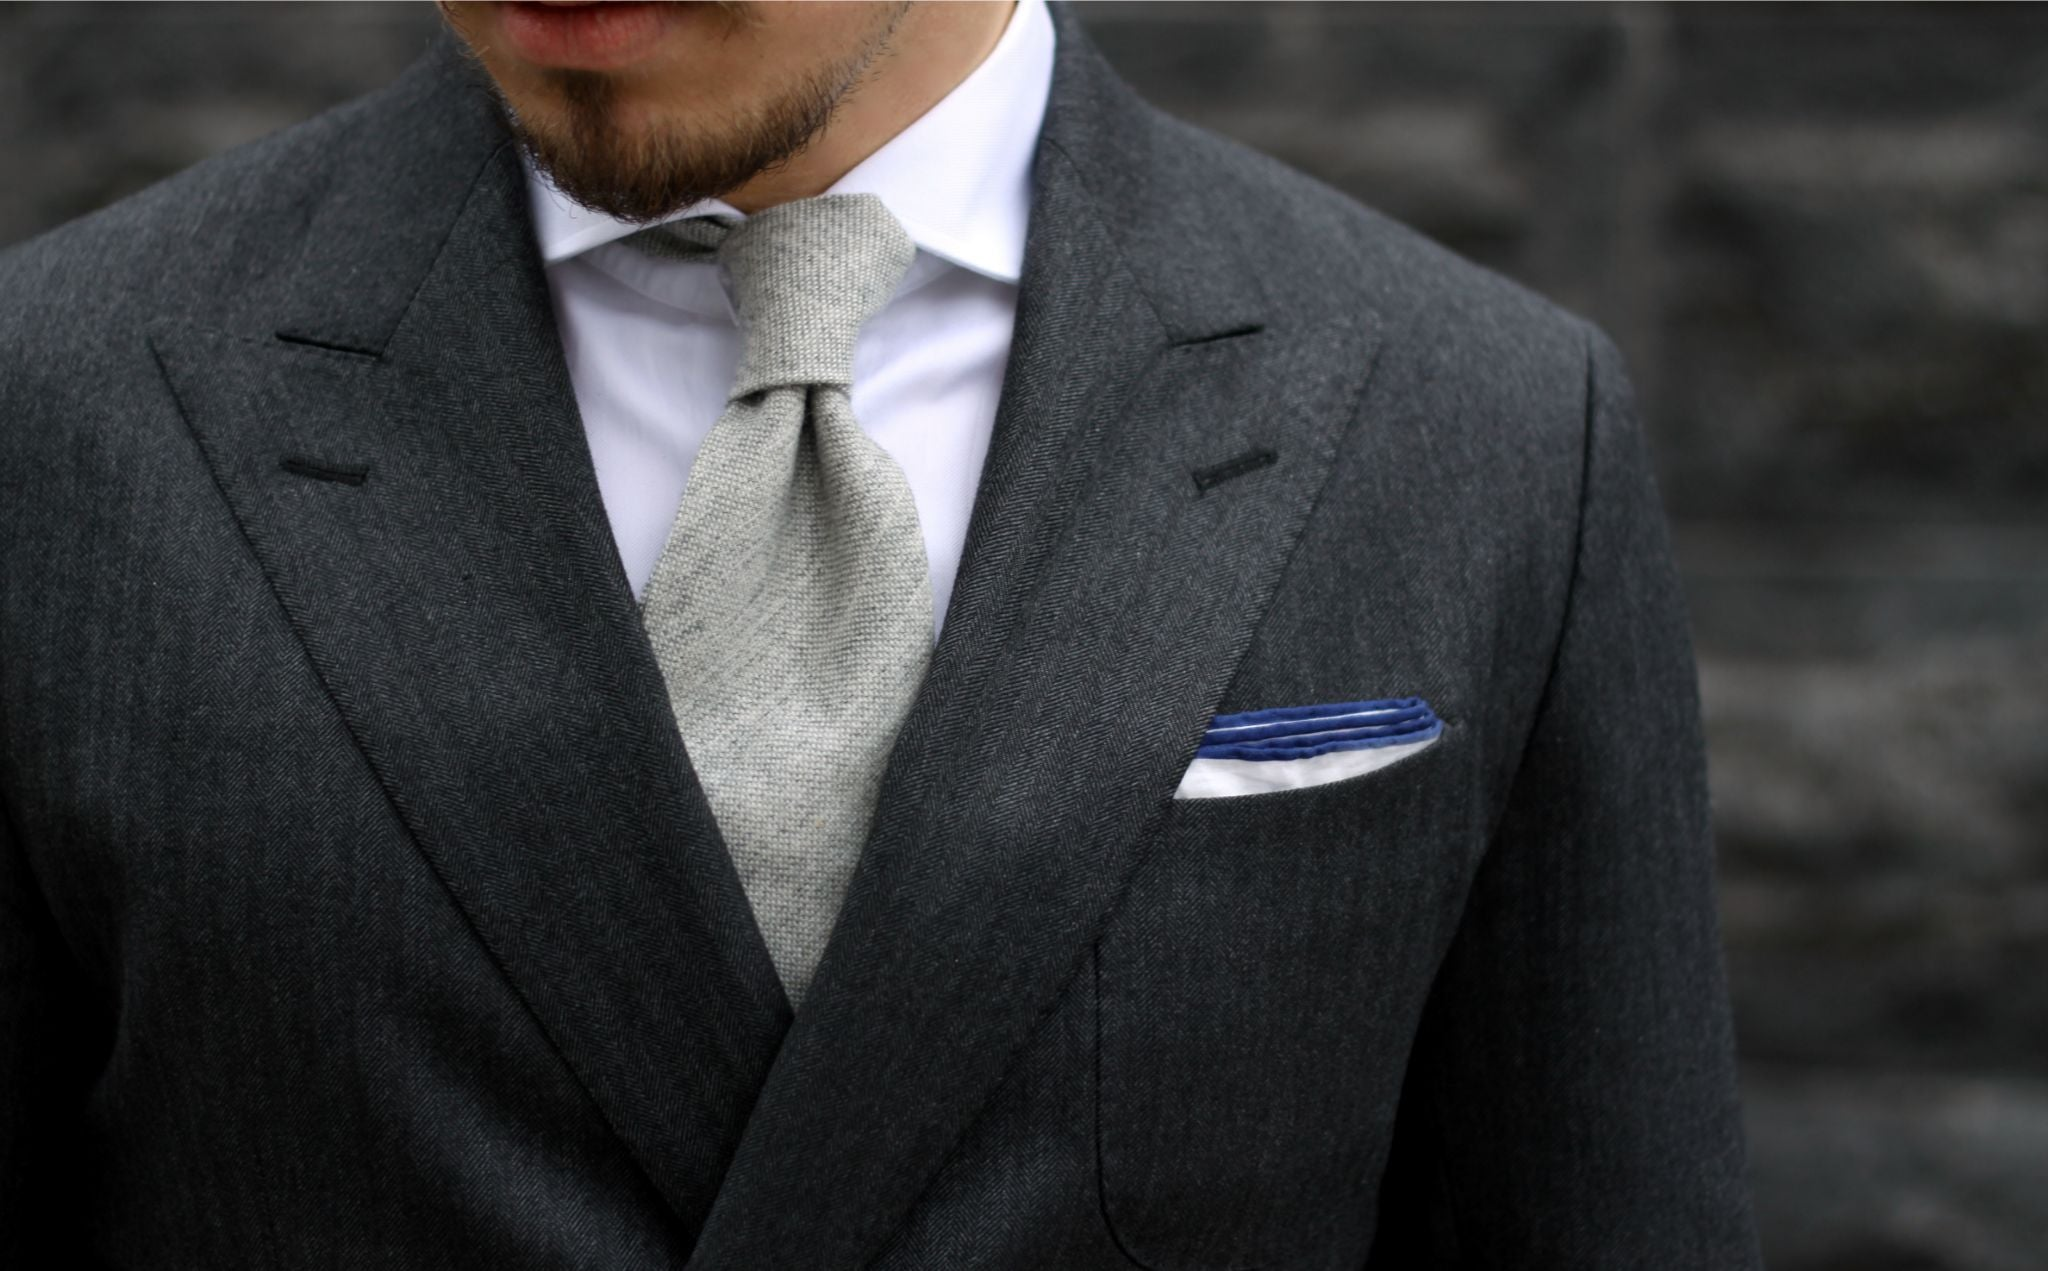 How to dress down a suit - wearing a gray cashmere tie